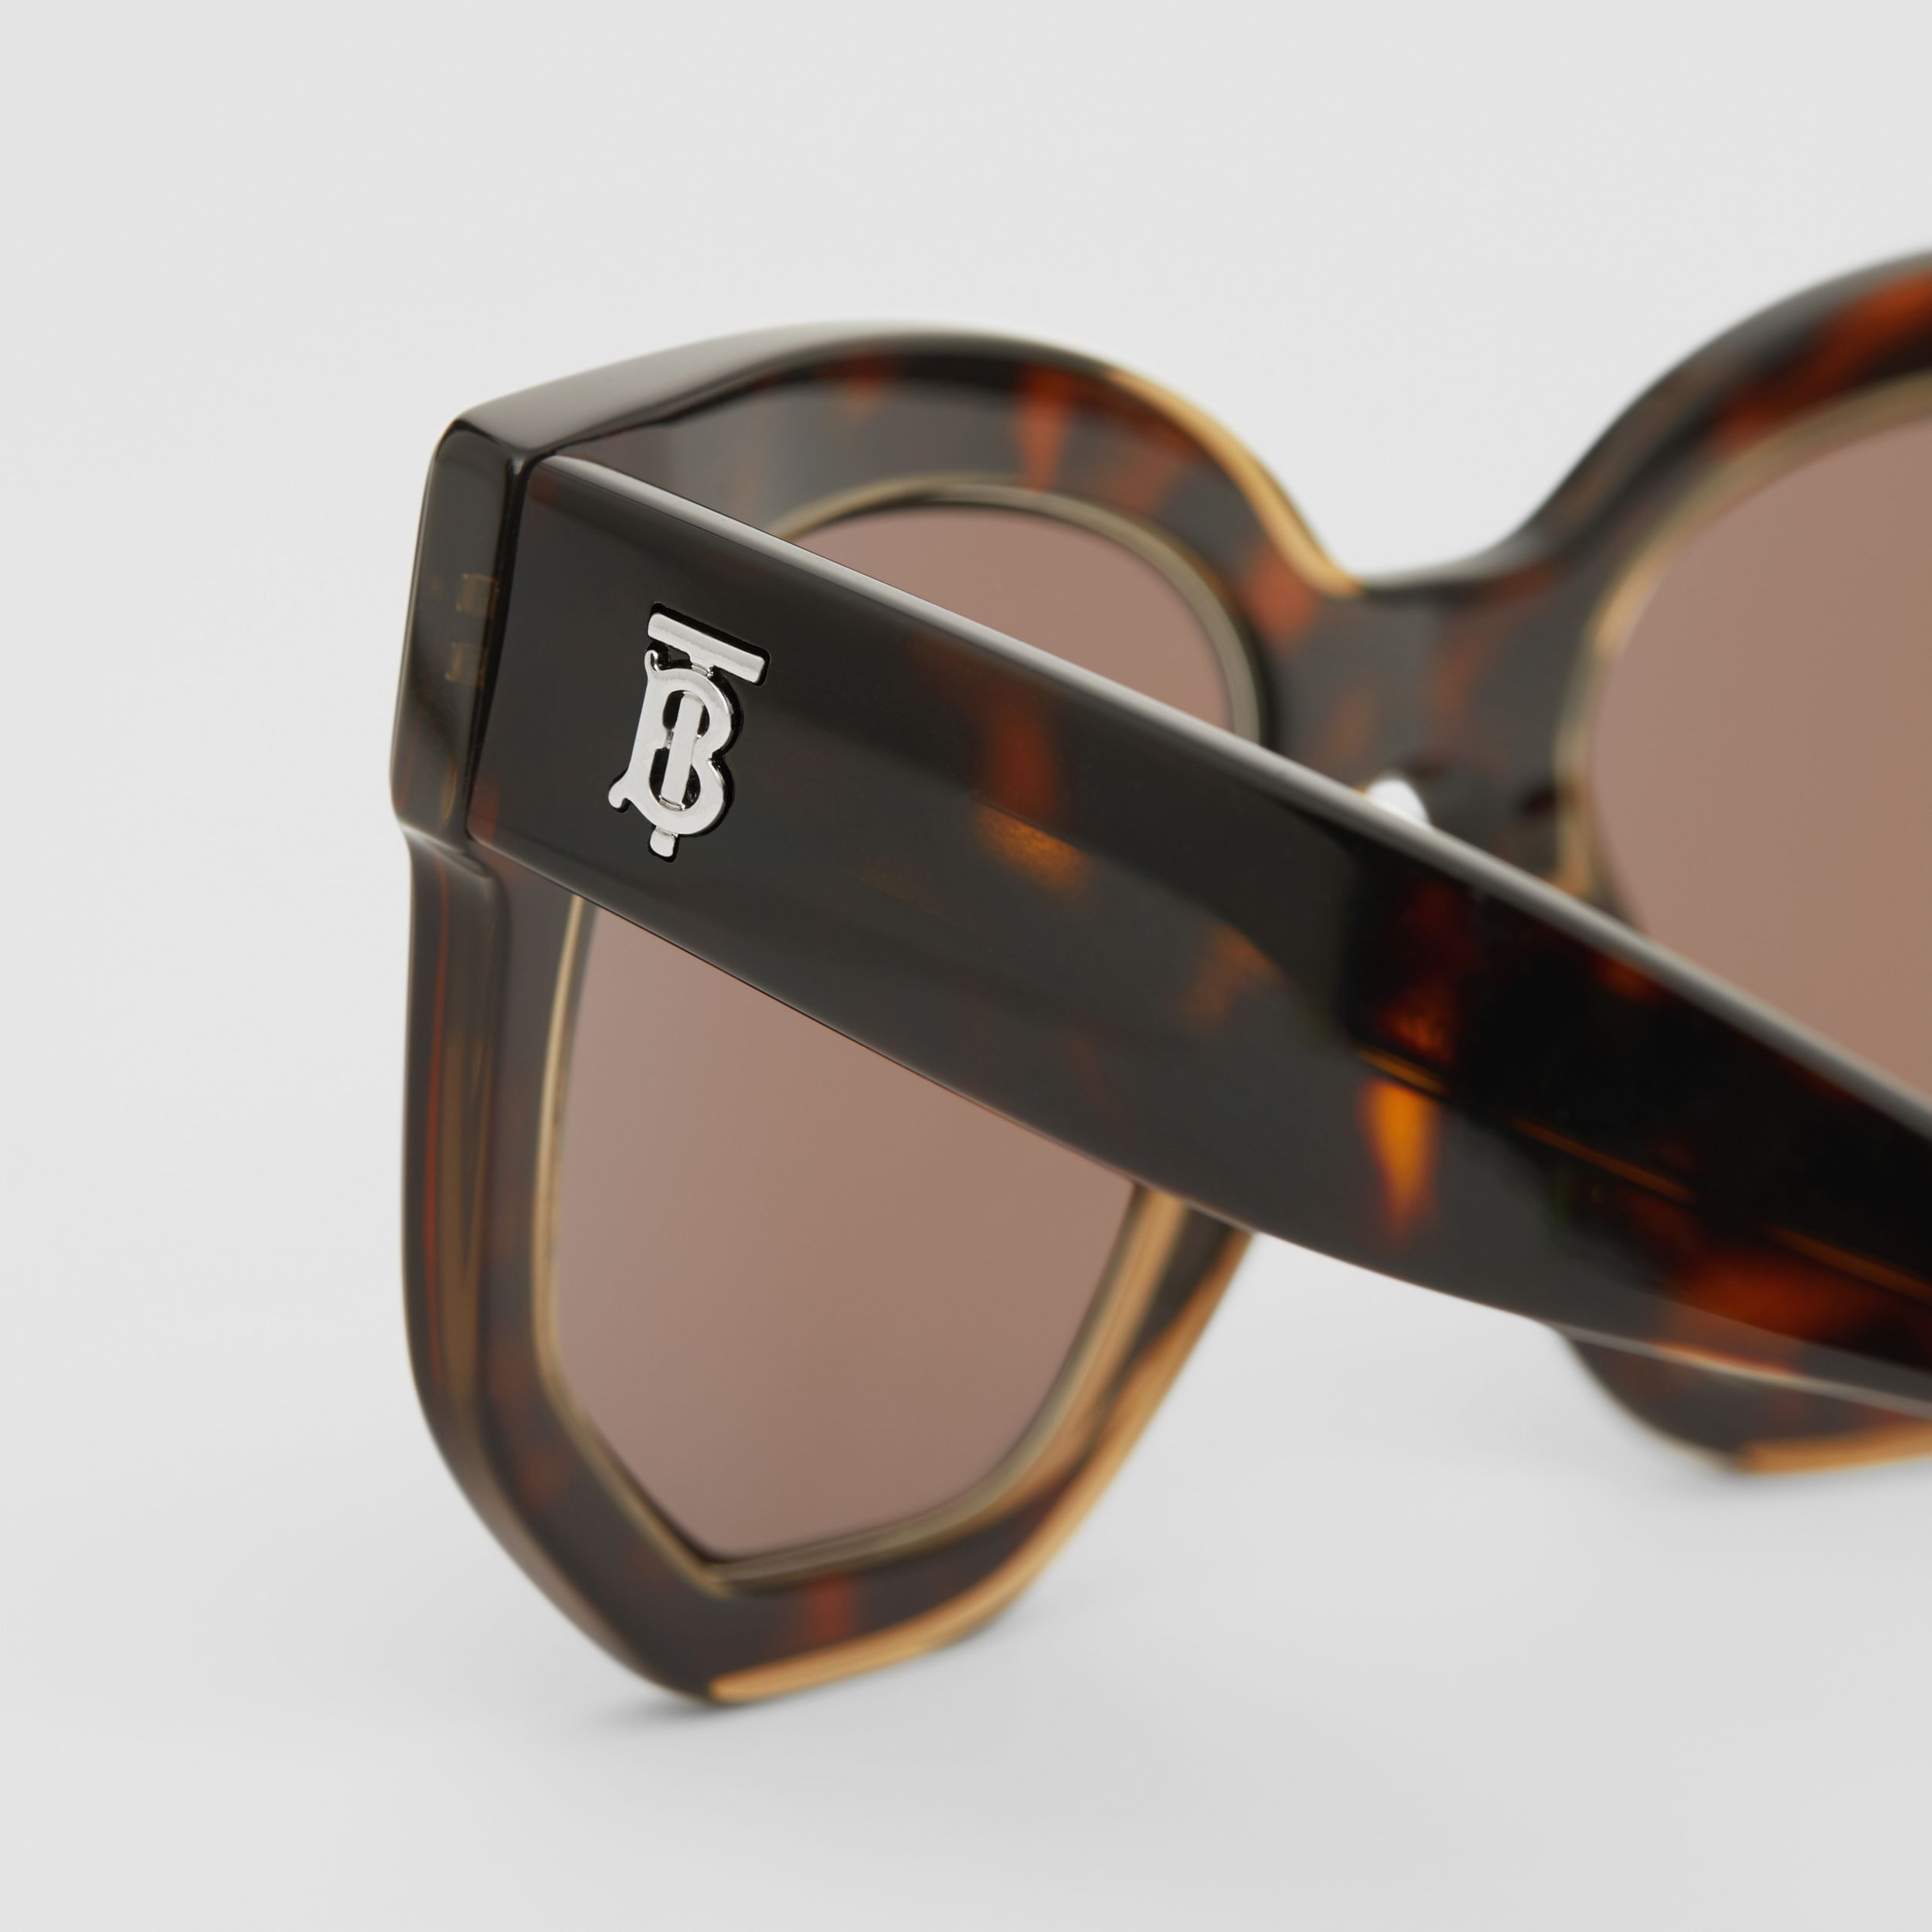 Geometric Frame Sunglasses in Tortoiseshell - Women | Burberry - 2